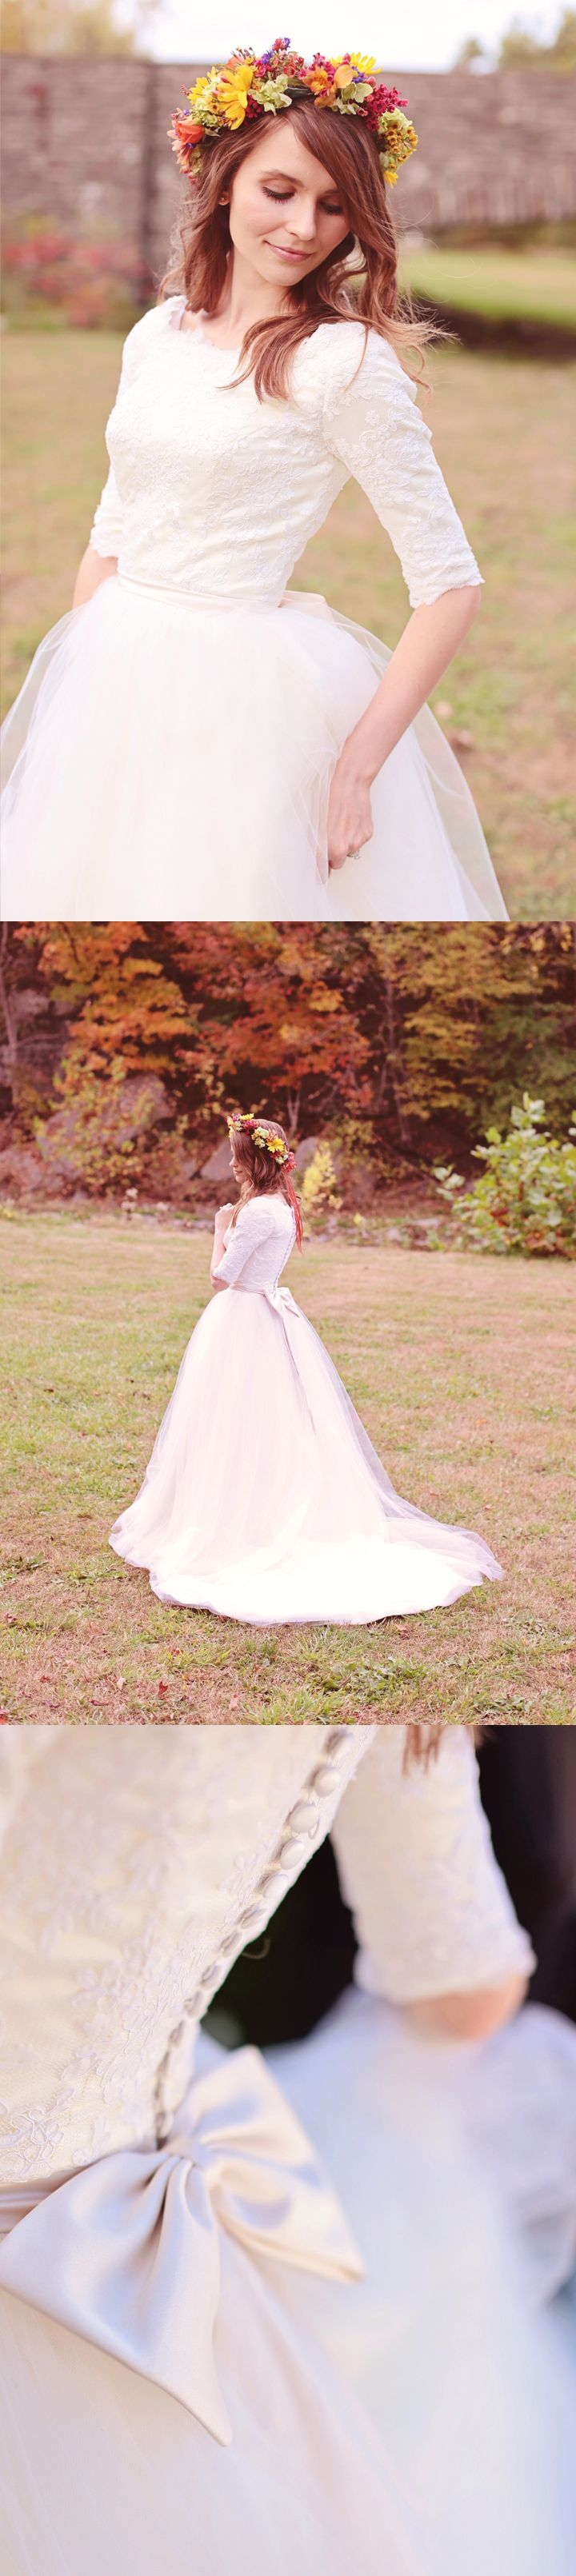 Long-sleeve wedding gown from Avail & Company. Almost any custom changes can be made to the design.